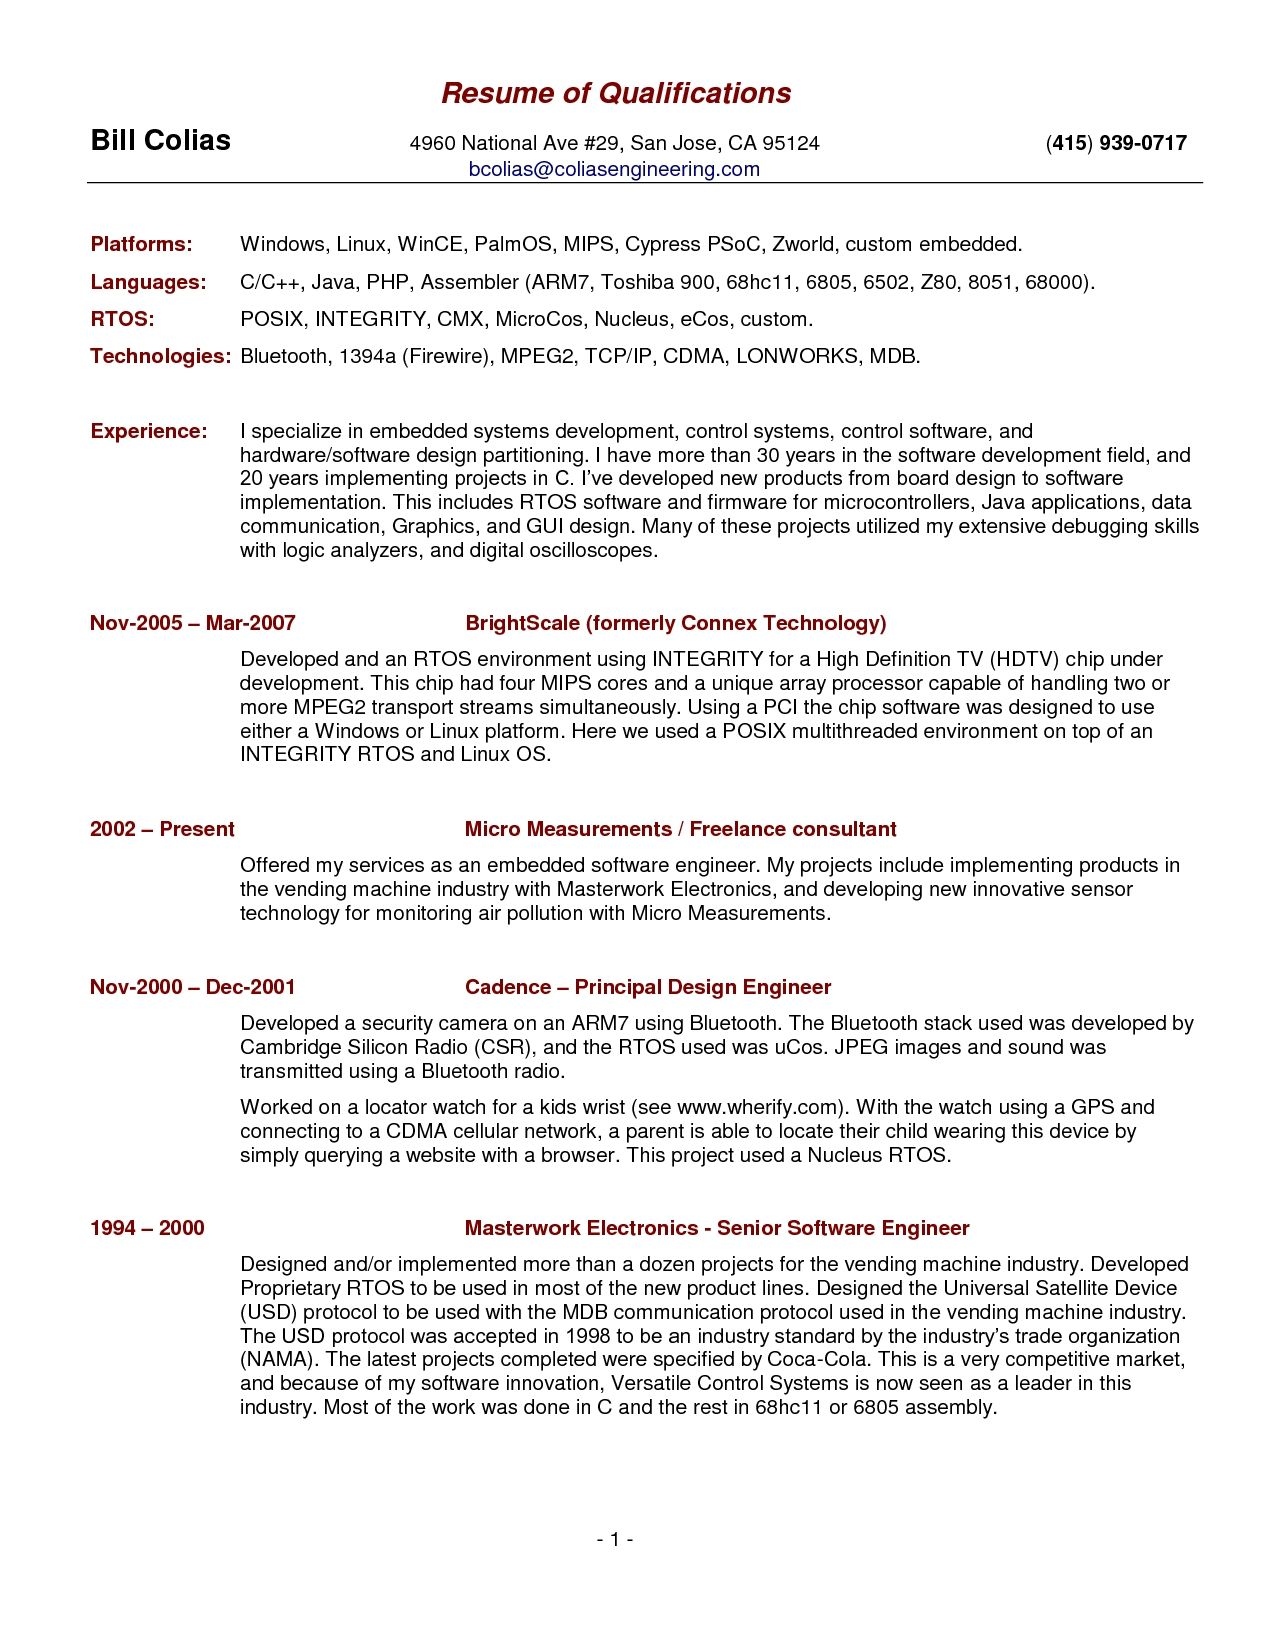 qualifications for a resume examples 7f8ea3a2a new resume skills and